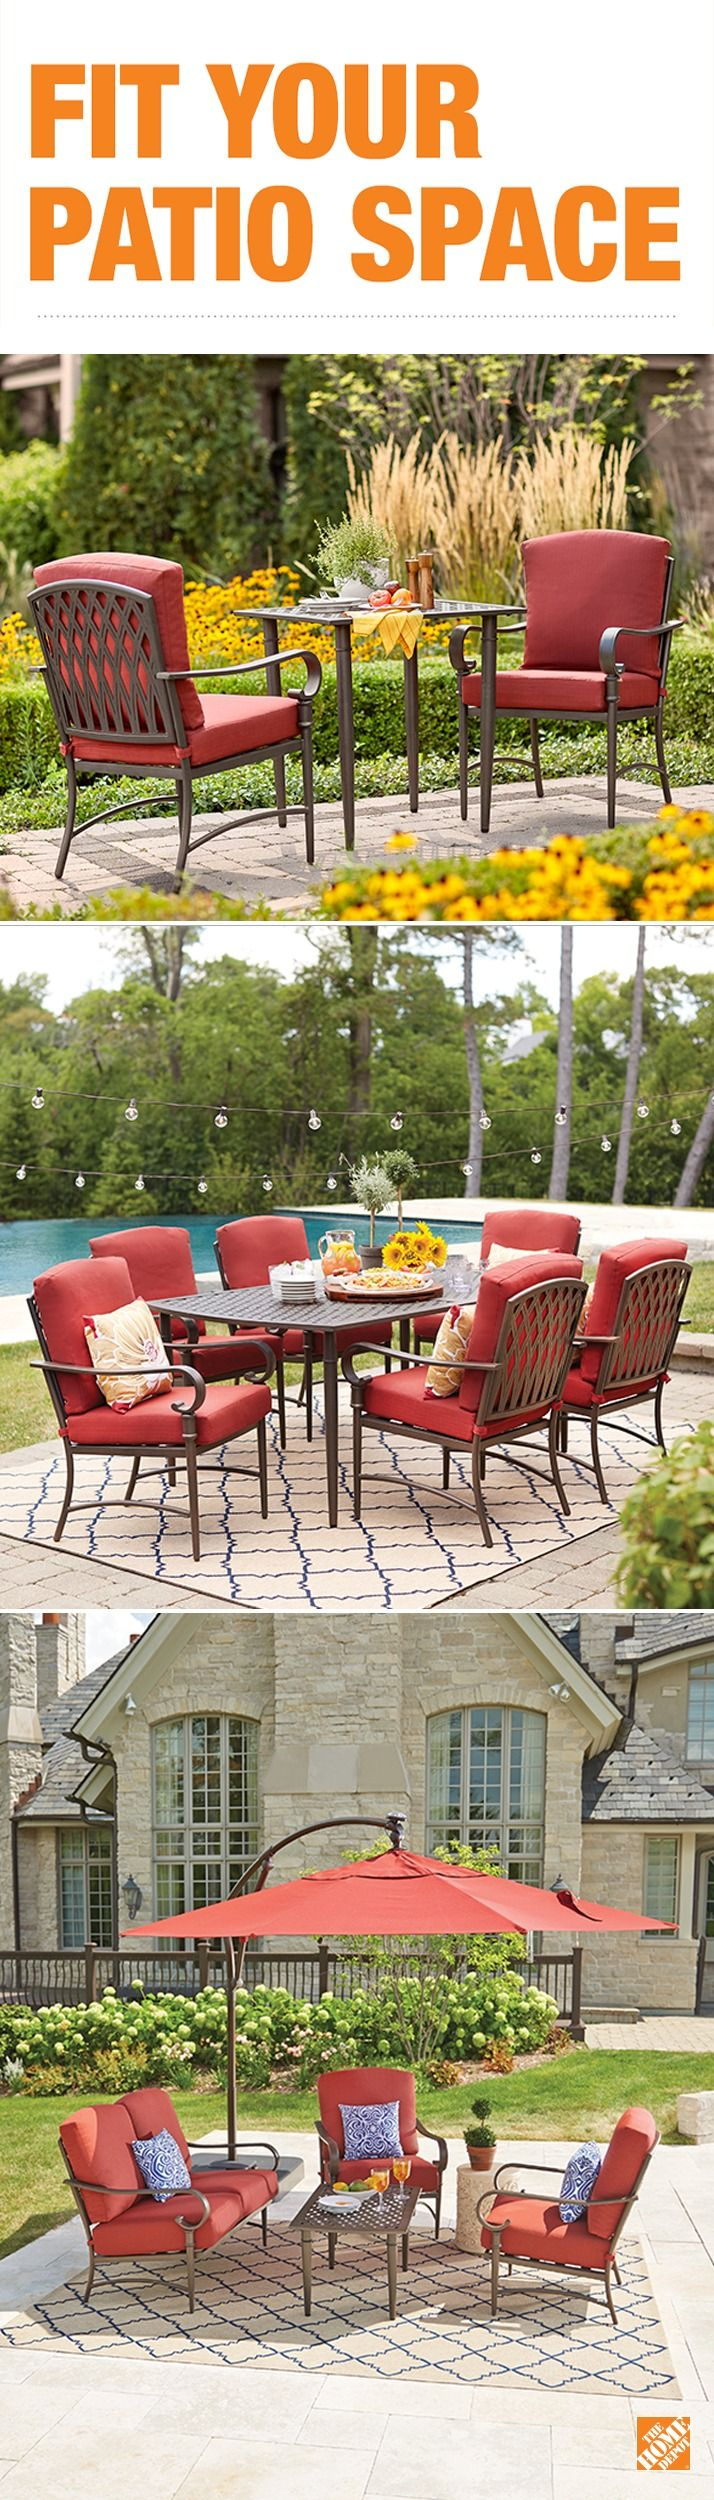 Outdoor Living Room Set 17 Best Images About Outdoor Living On Pinterest Fire Pits